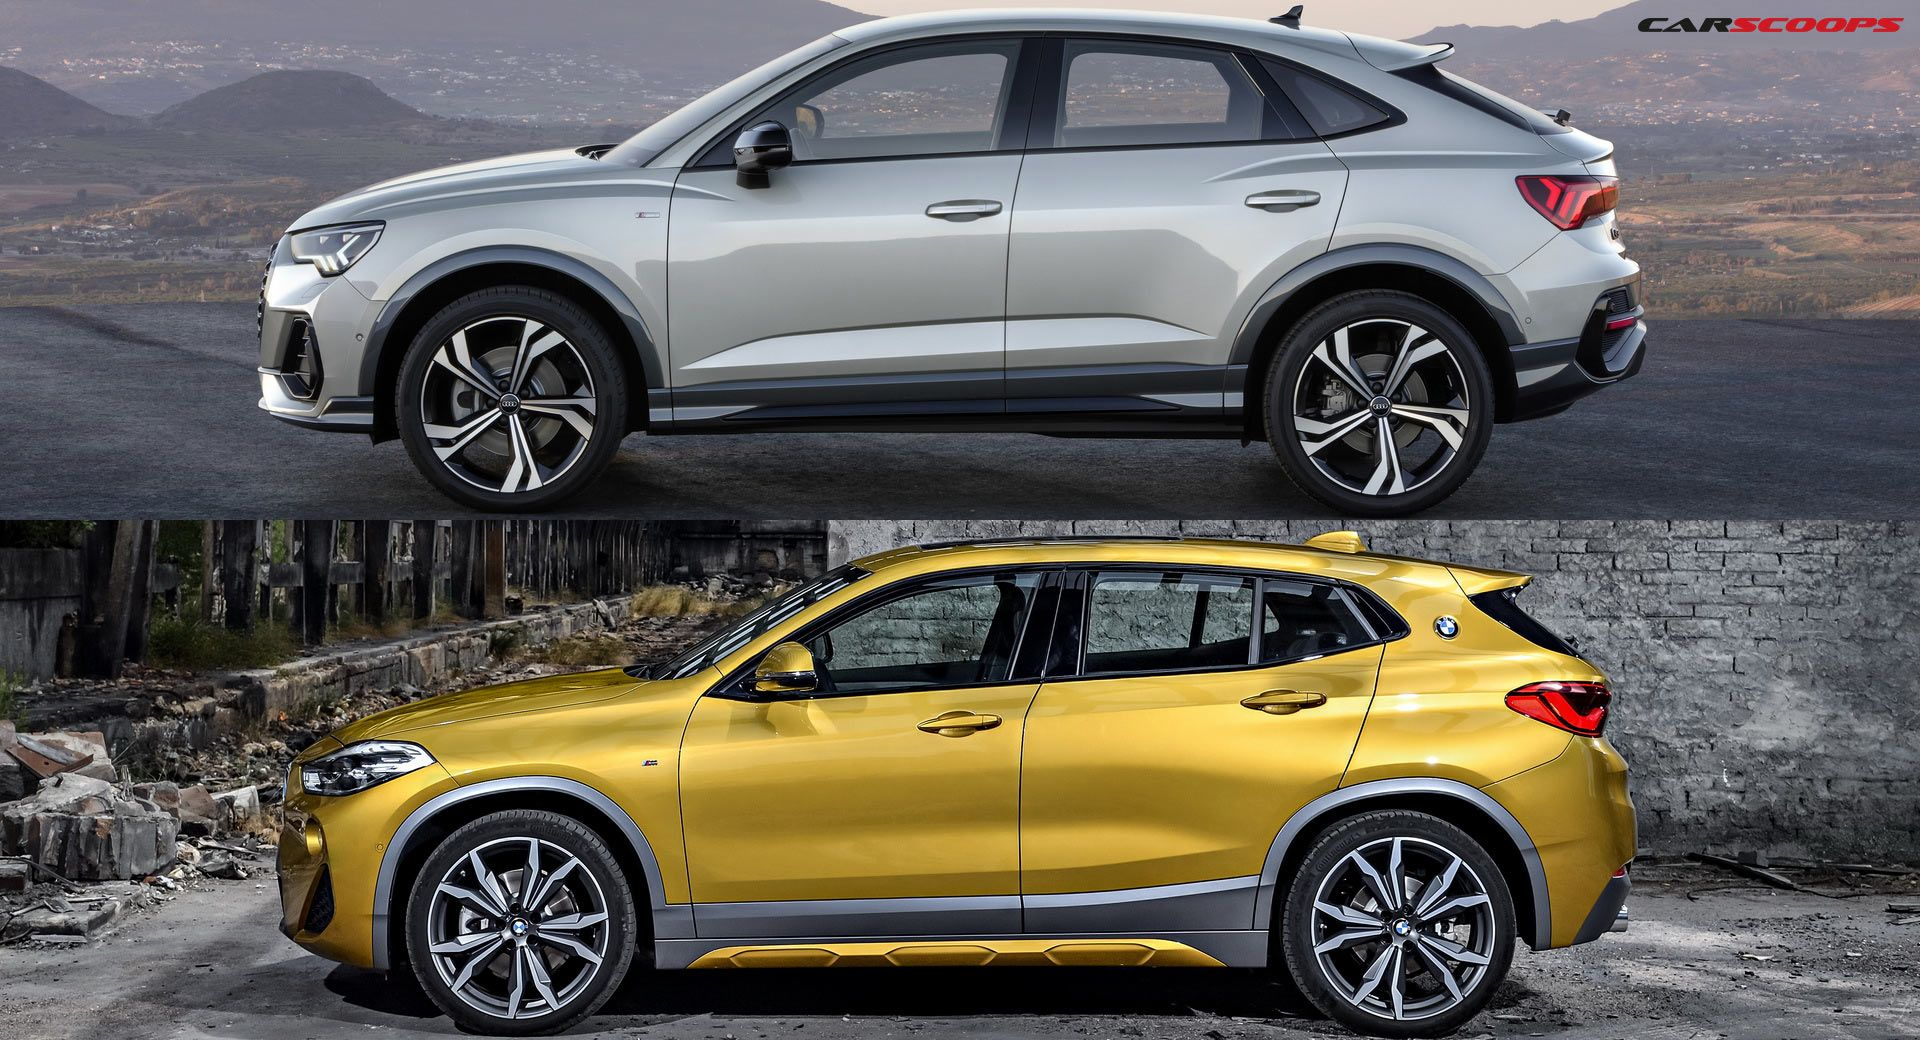 Audi Q3 Sportback Or BMW X2? We Compare Them, You Tell Us